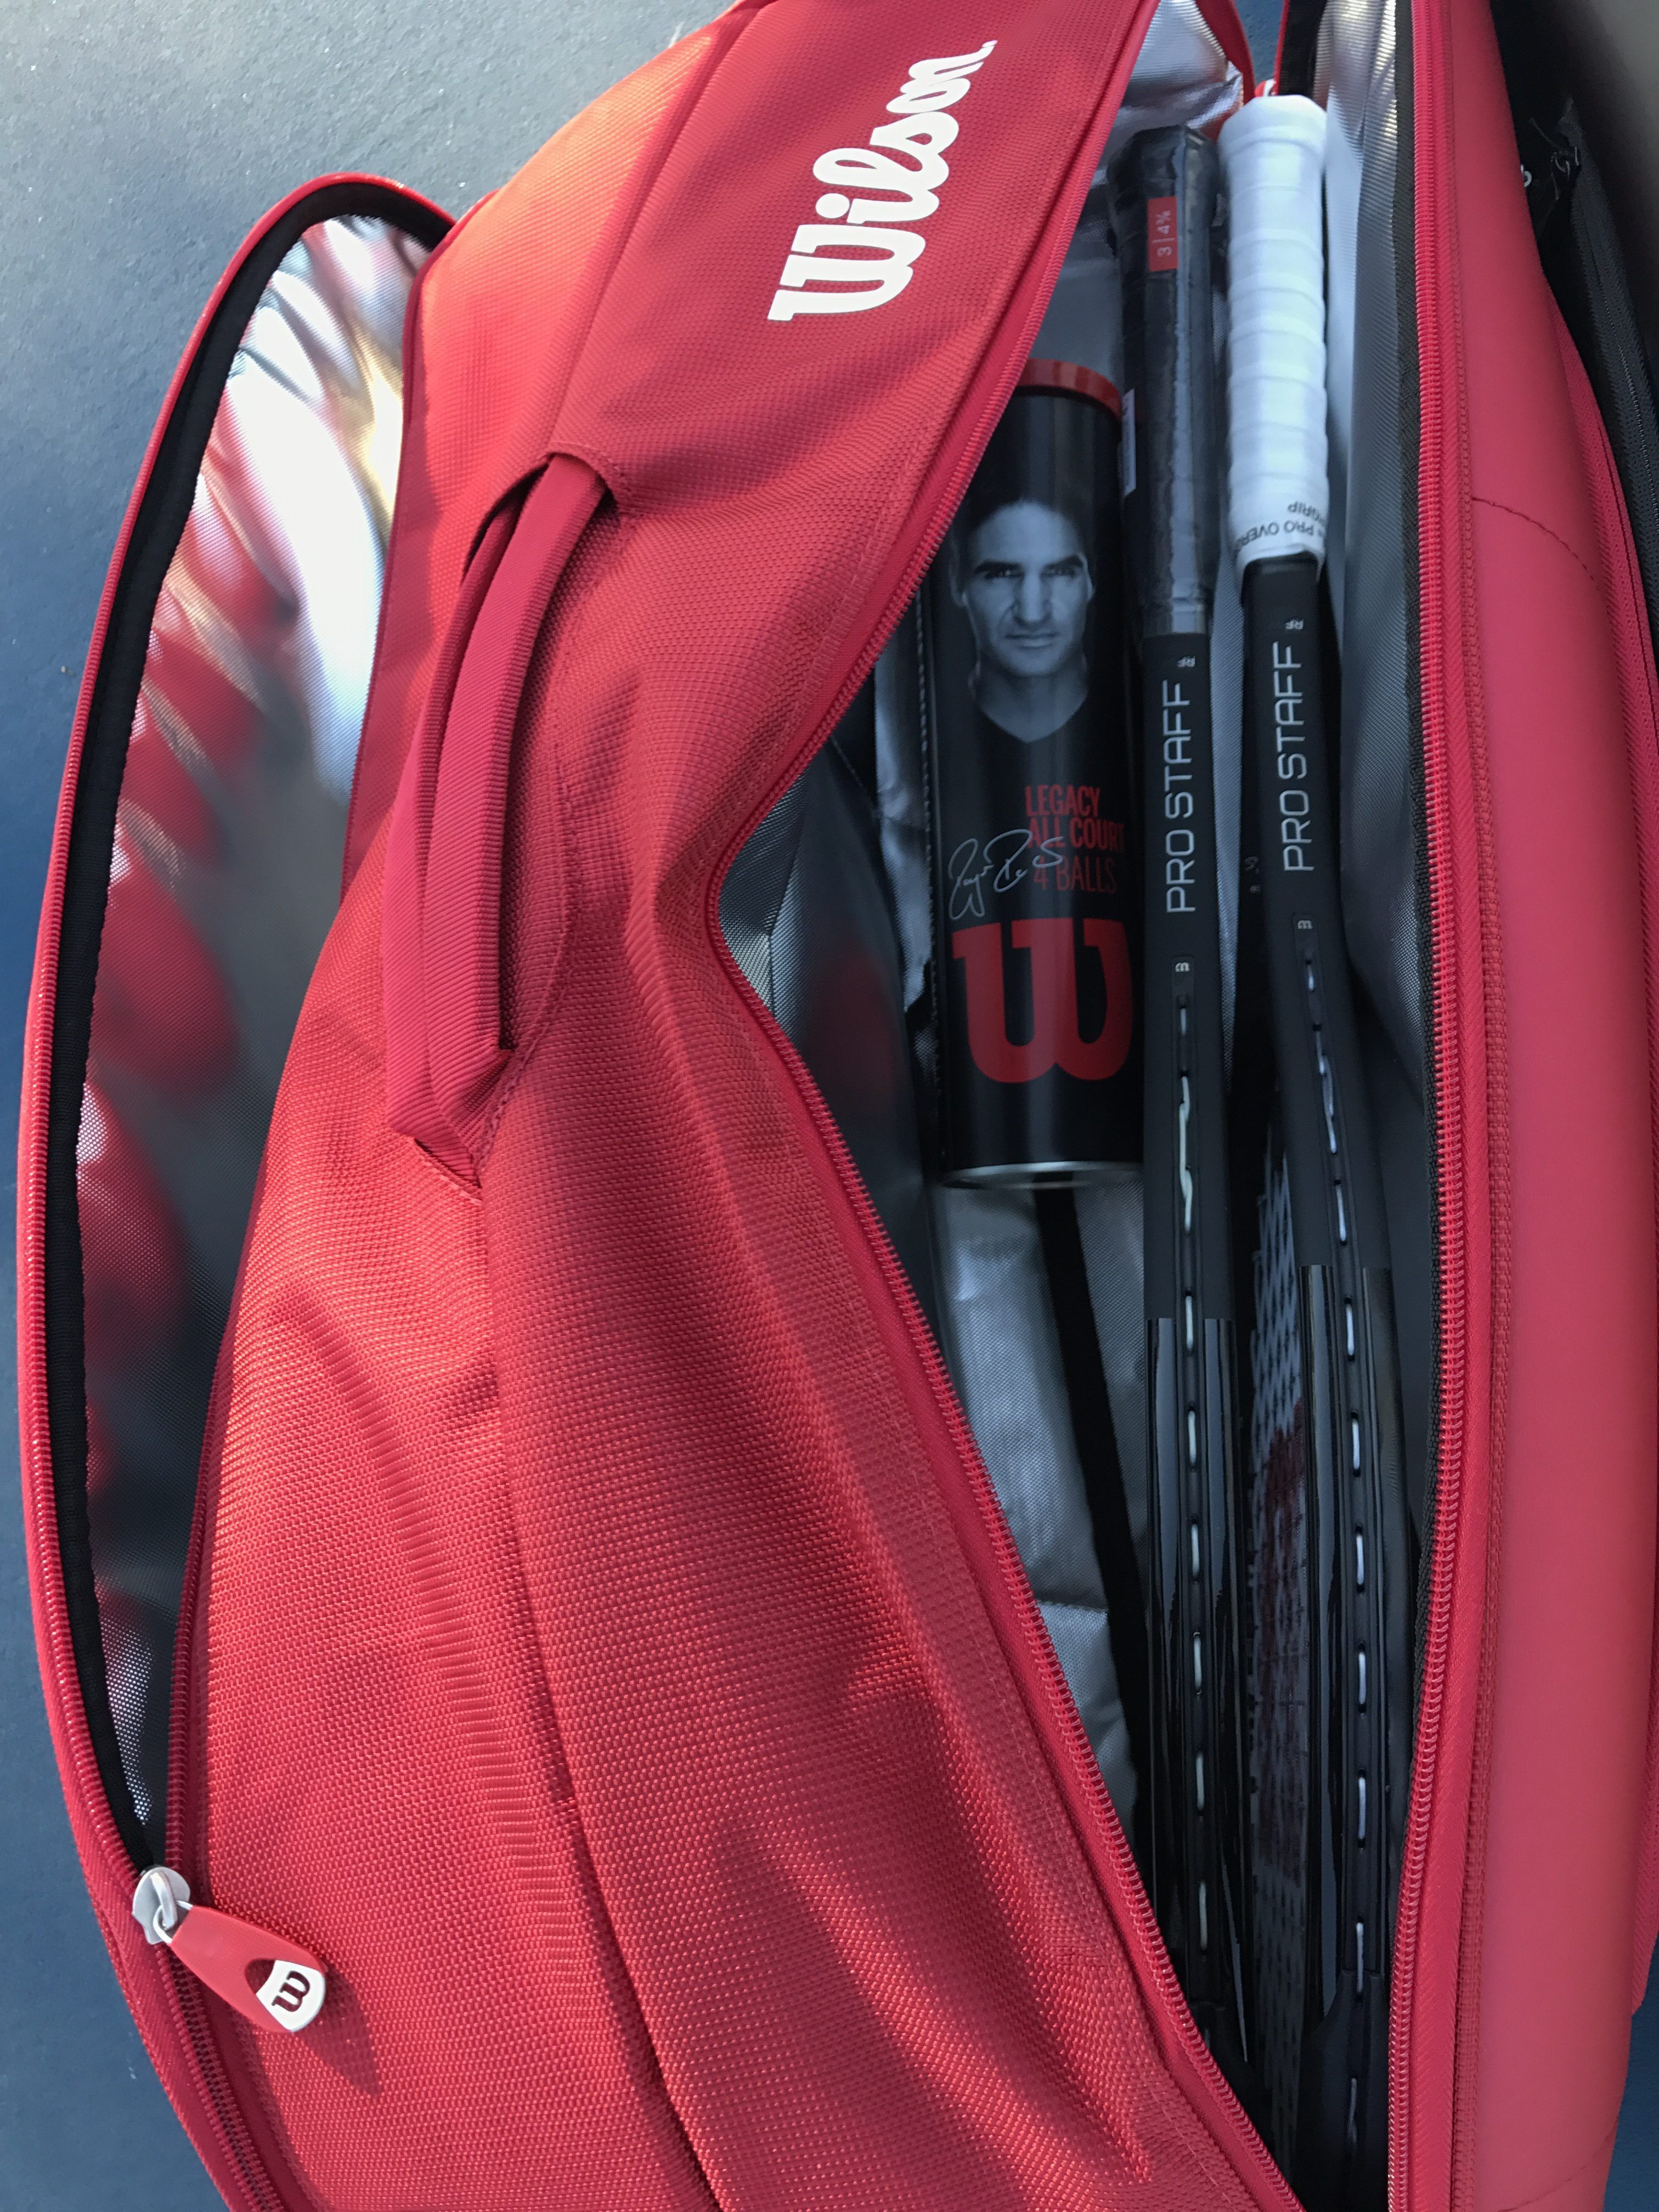 Whats In My Essential Wilson Dna 12 Bag Used By Roger Federer